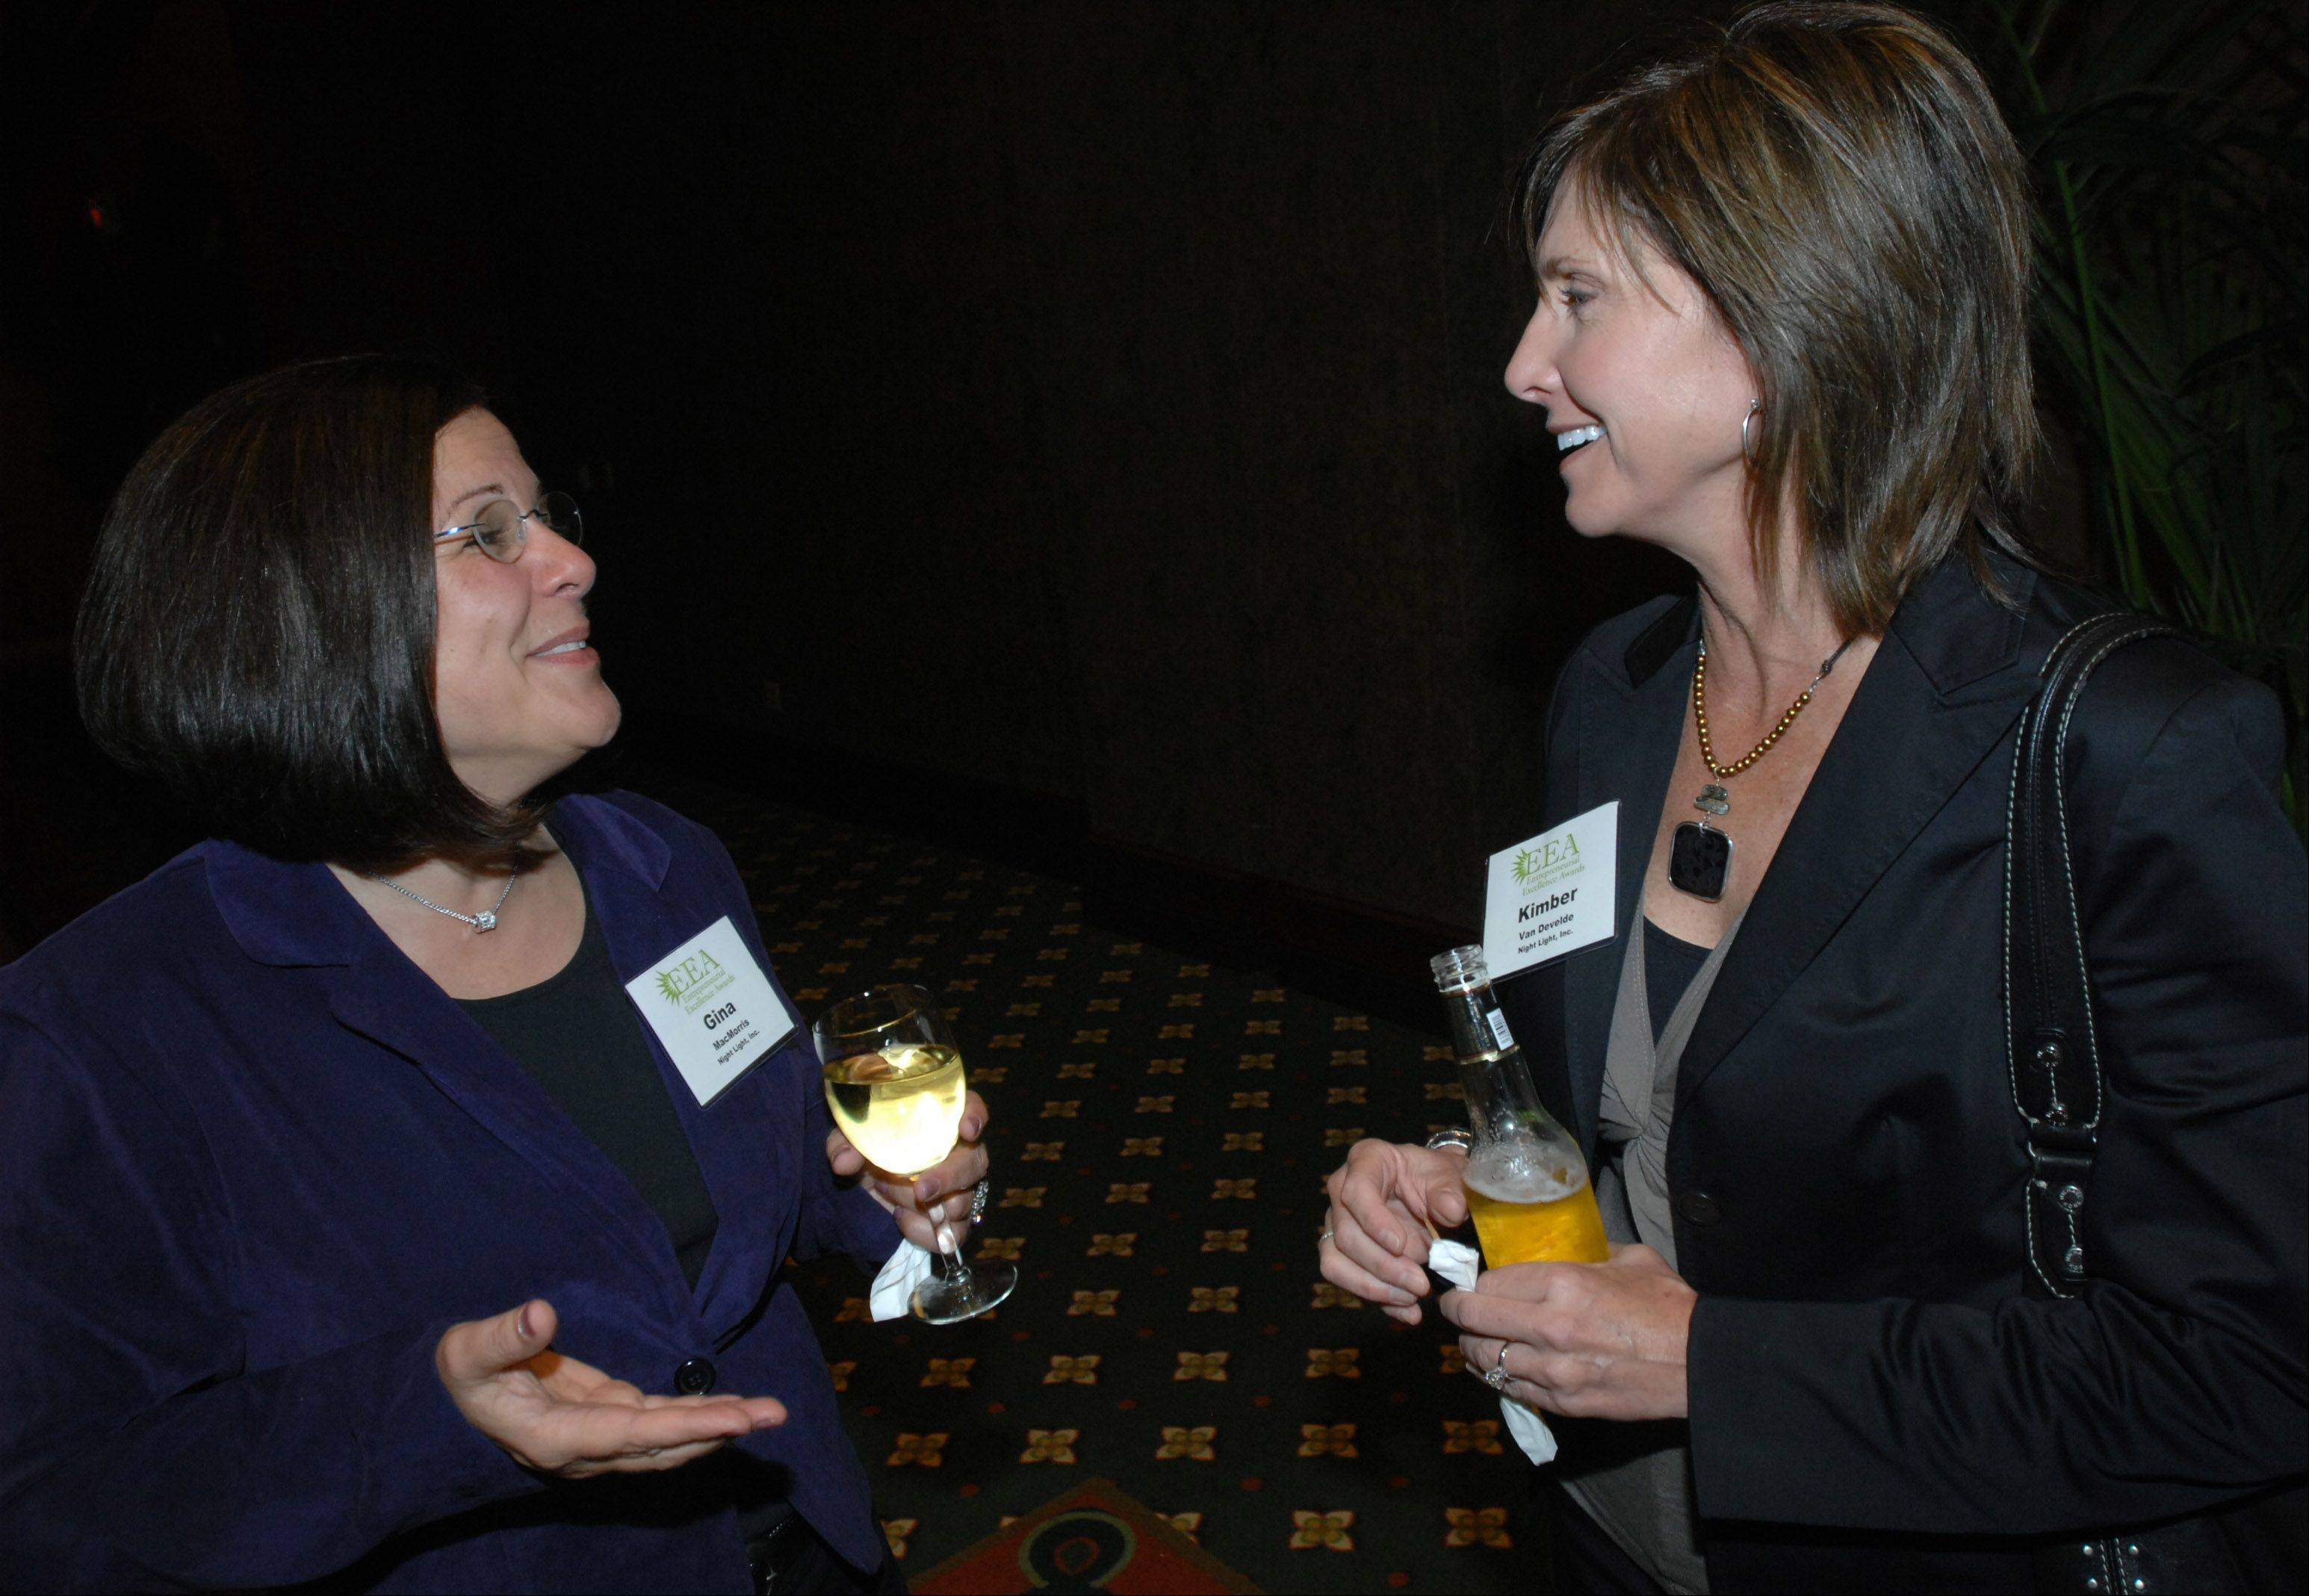 Gina MacMorris,left, and Kimber VanDevelde, both of Night Light,Inc, chat during the 13th Annual Entrepreneurial Excellence Awards at Medinah Banquets in Addison Thursday.